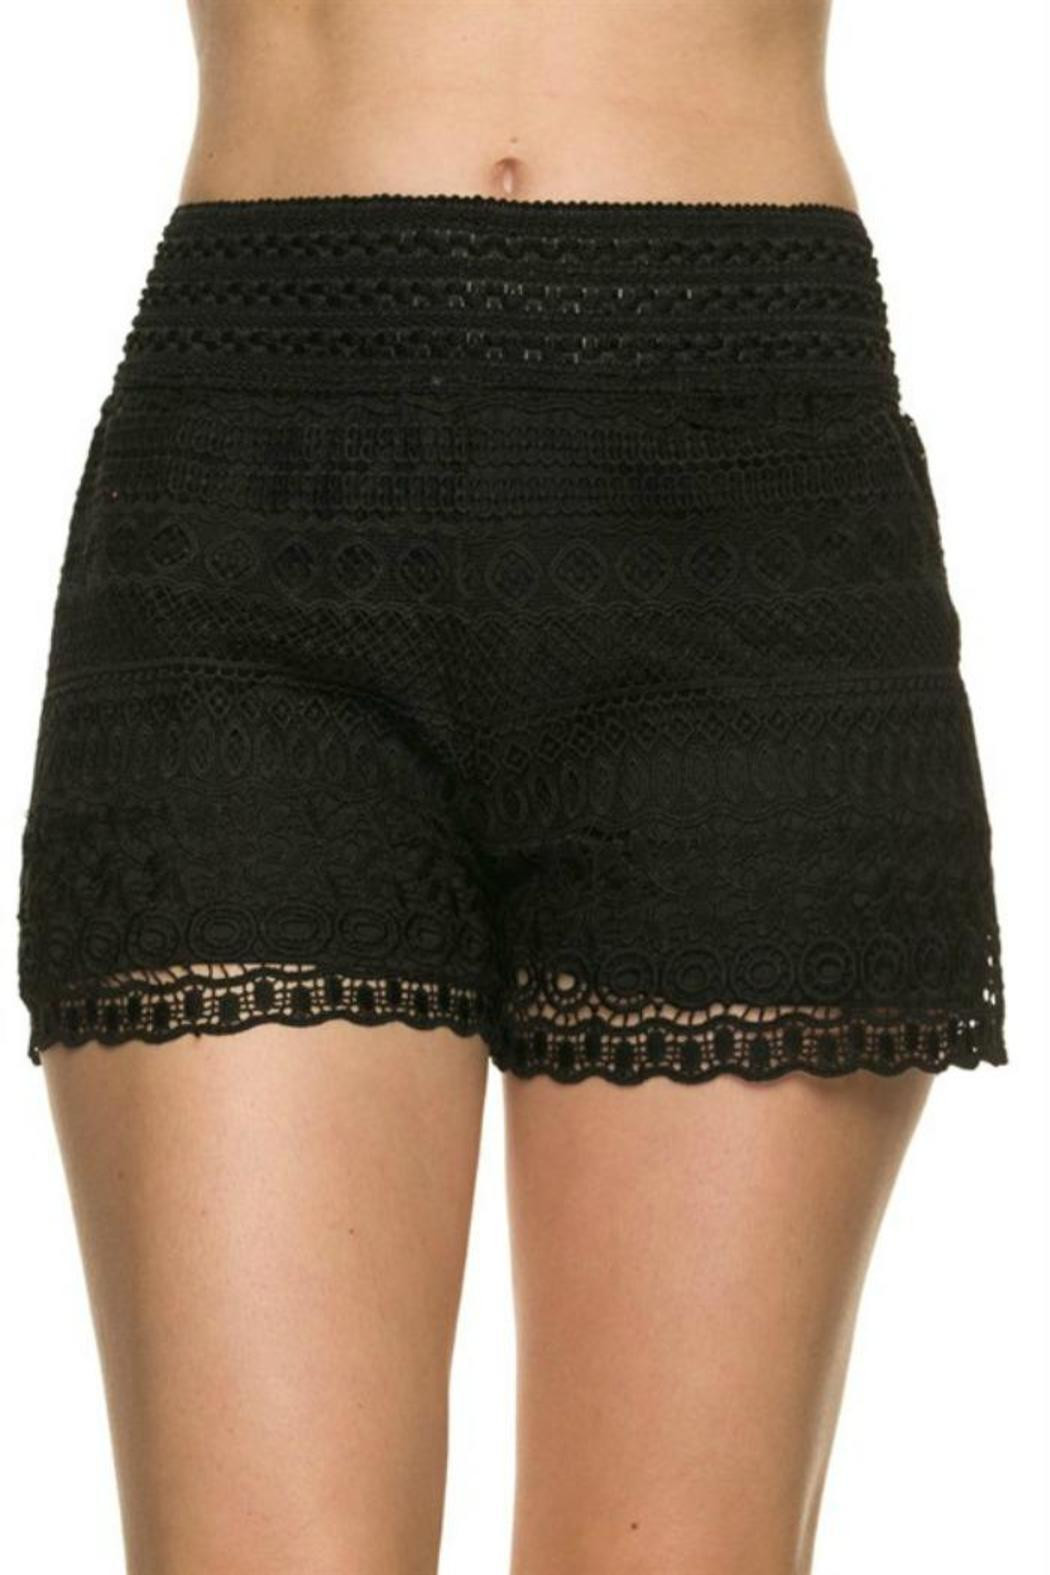 Lace Crochet Shorts Luxury Kathy Lace Crochet Shorts From Texas by Chili Peppers Of Wonderful 49 Images Lace Crochet Shorts